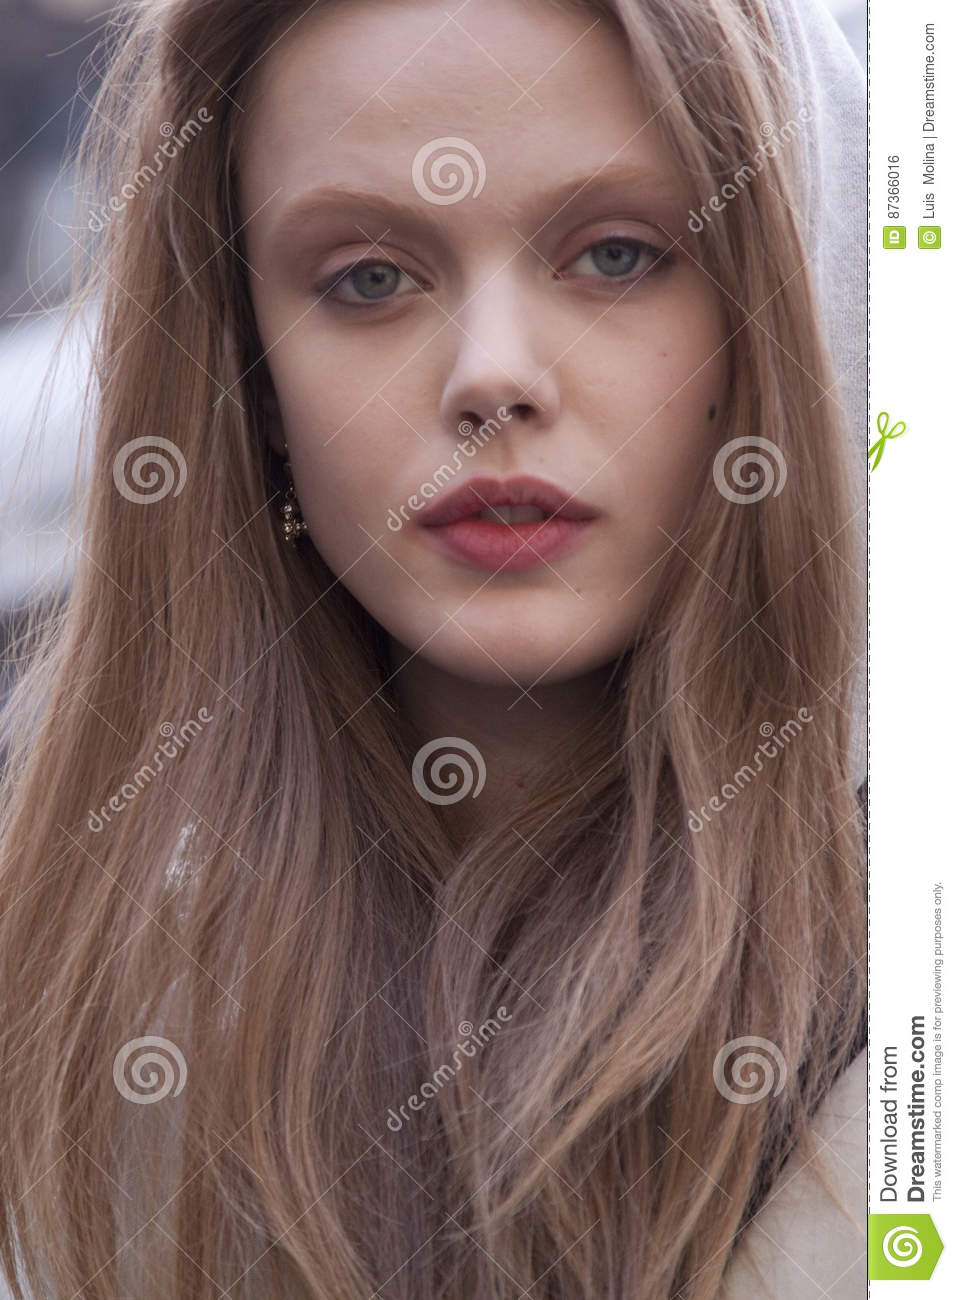 ICloud Frida Gustavsson naked (81 photo), Pussy, Is a cute, Boobs, cleavage 2020